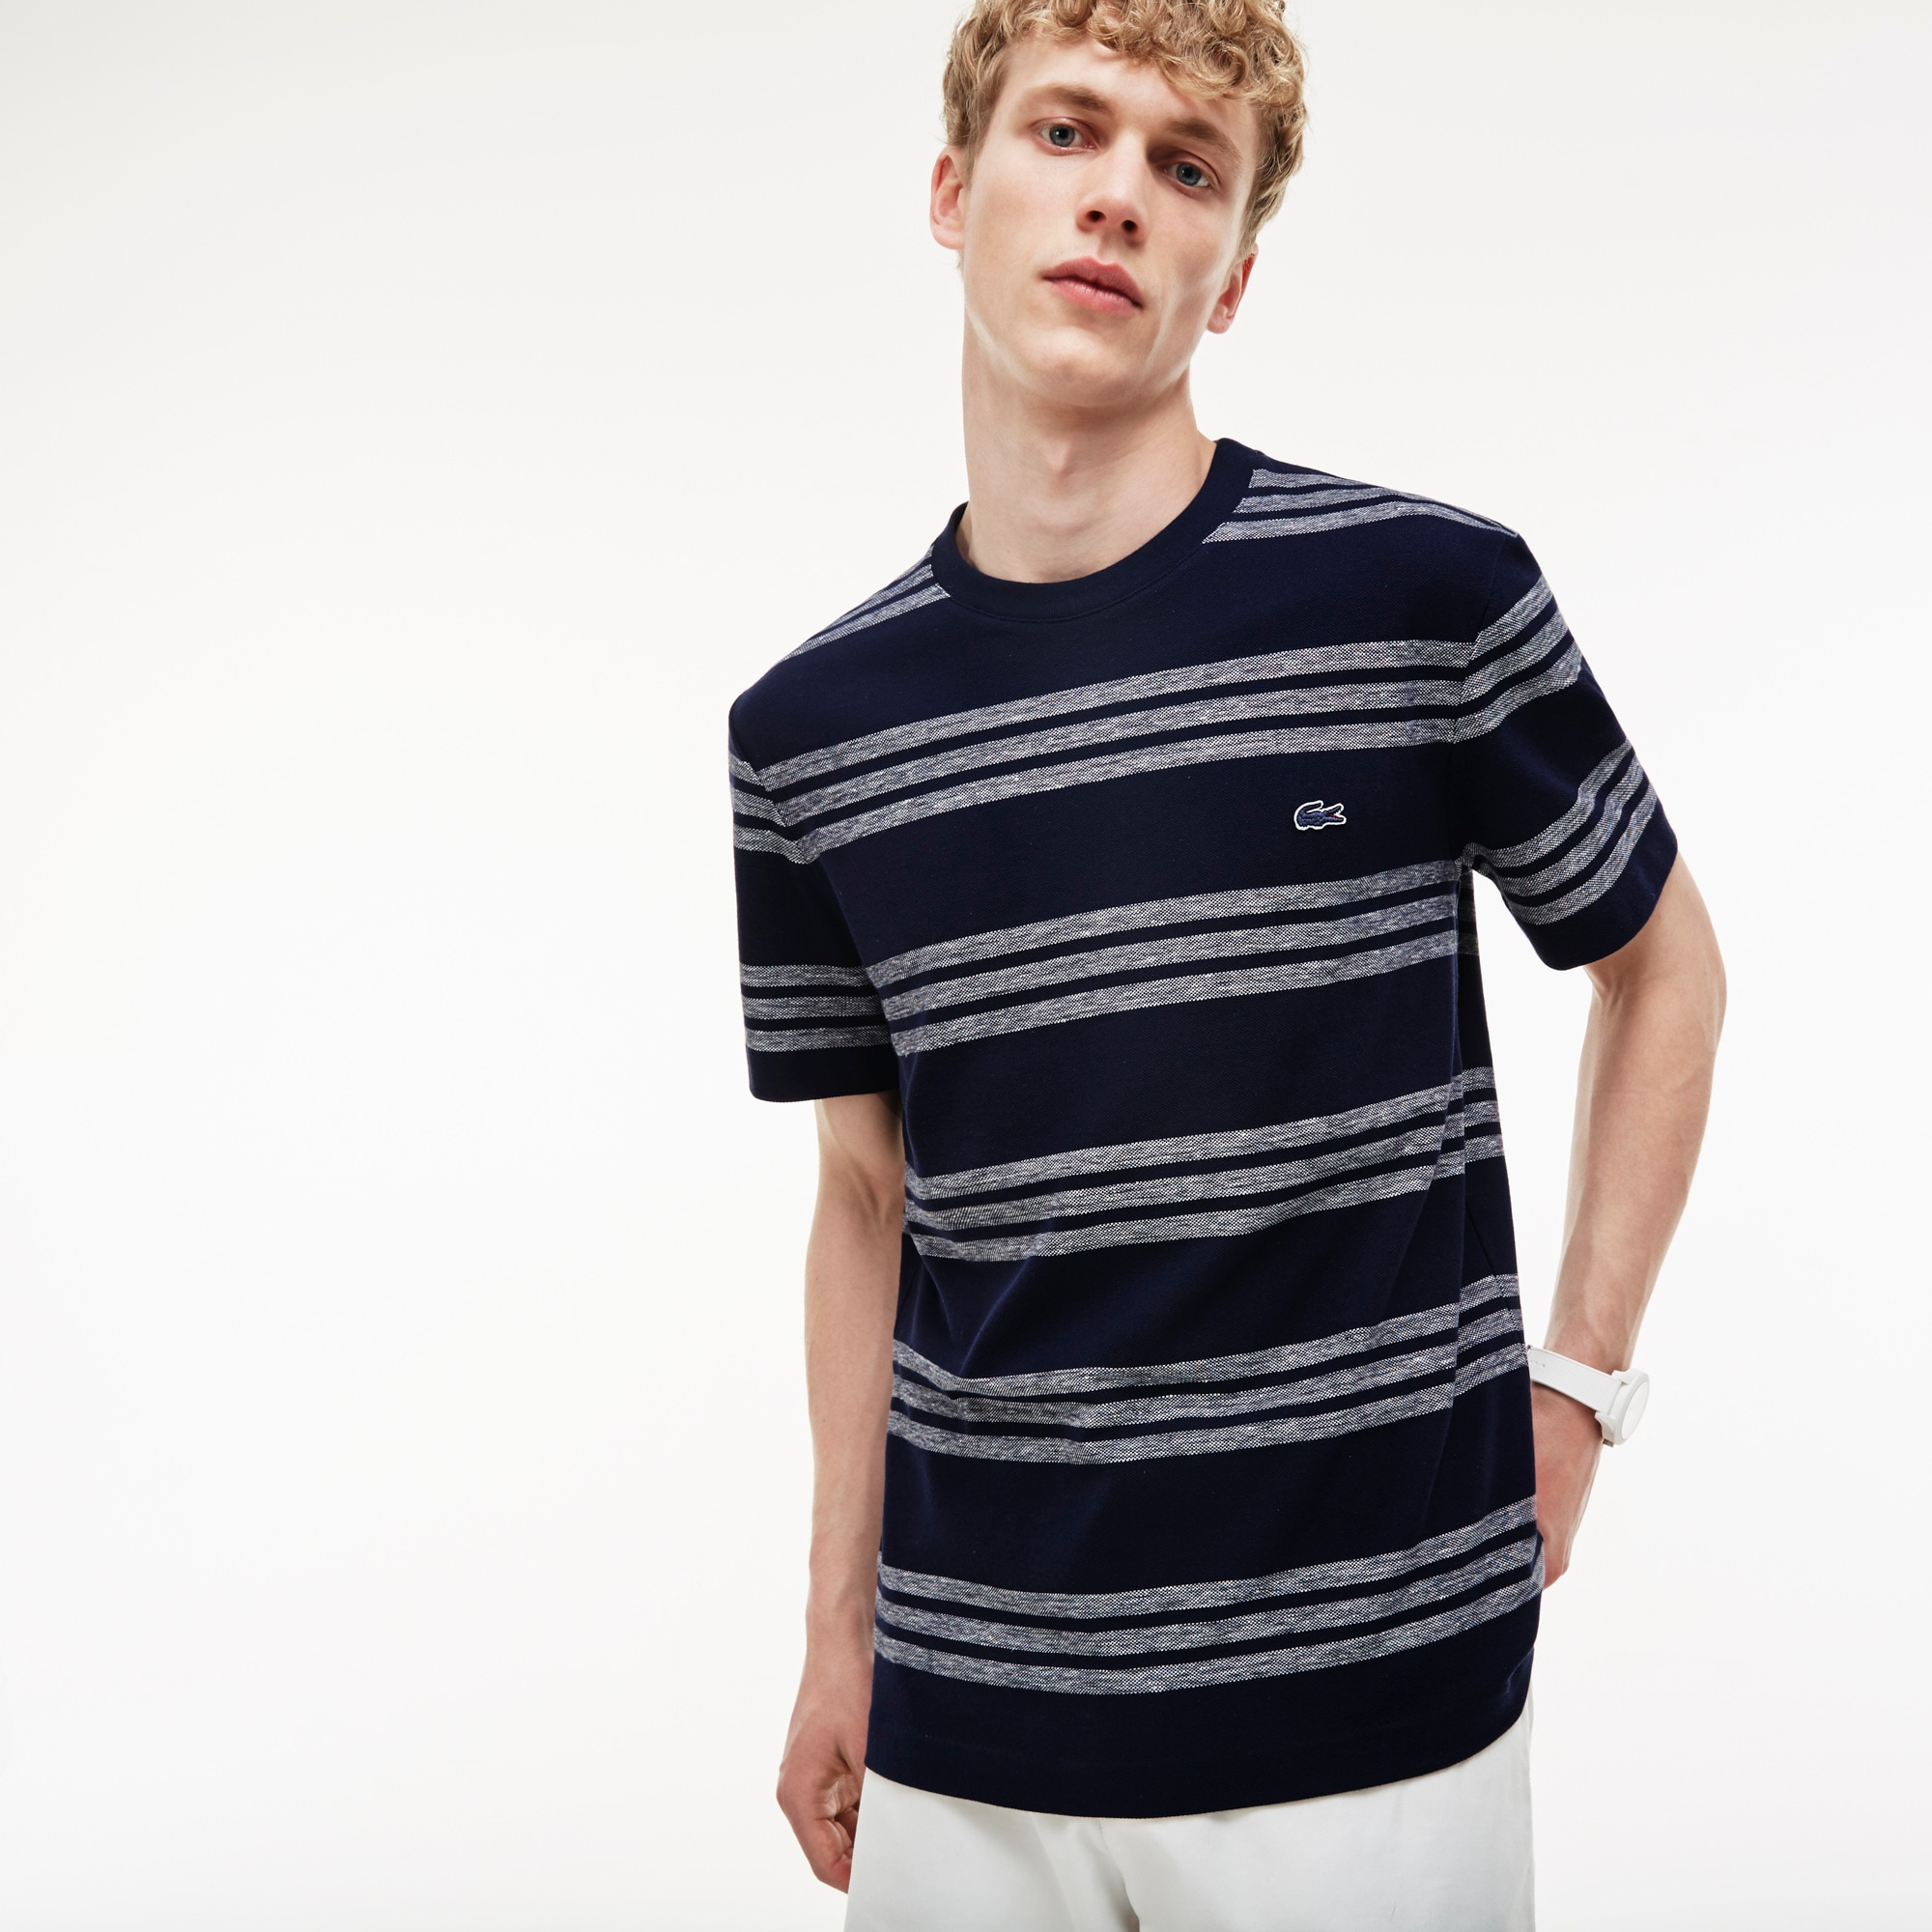 mens tshirts on sale lacoste